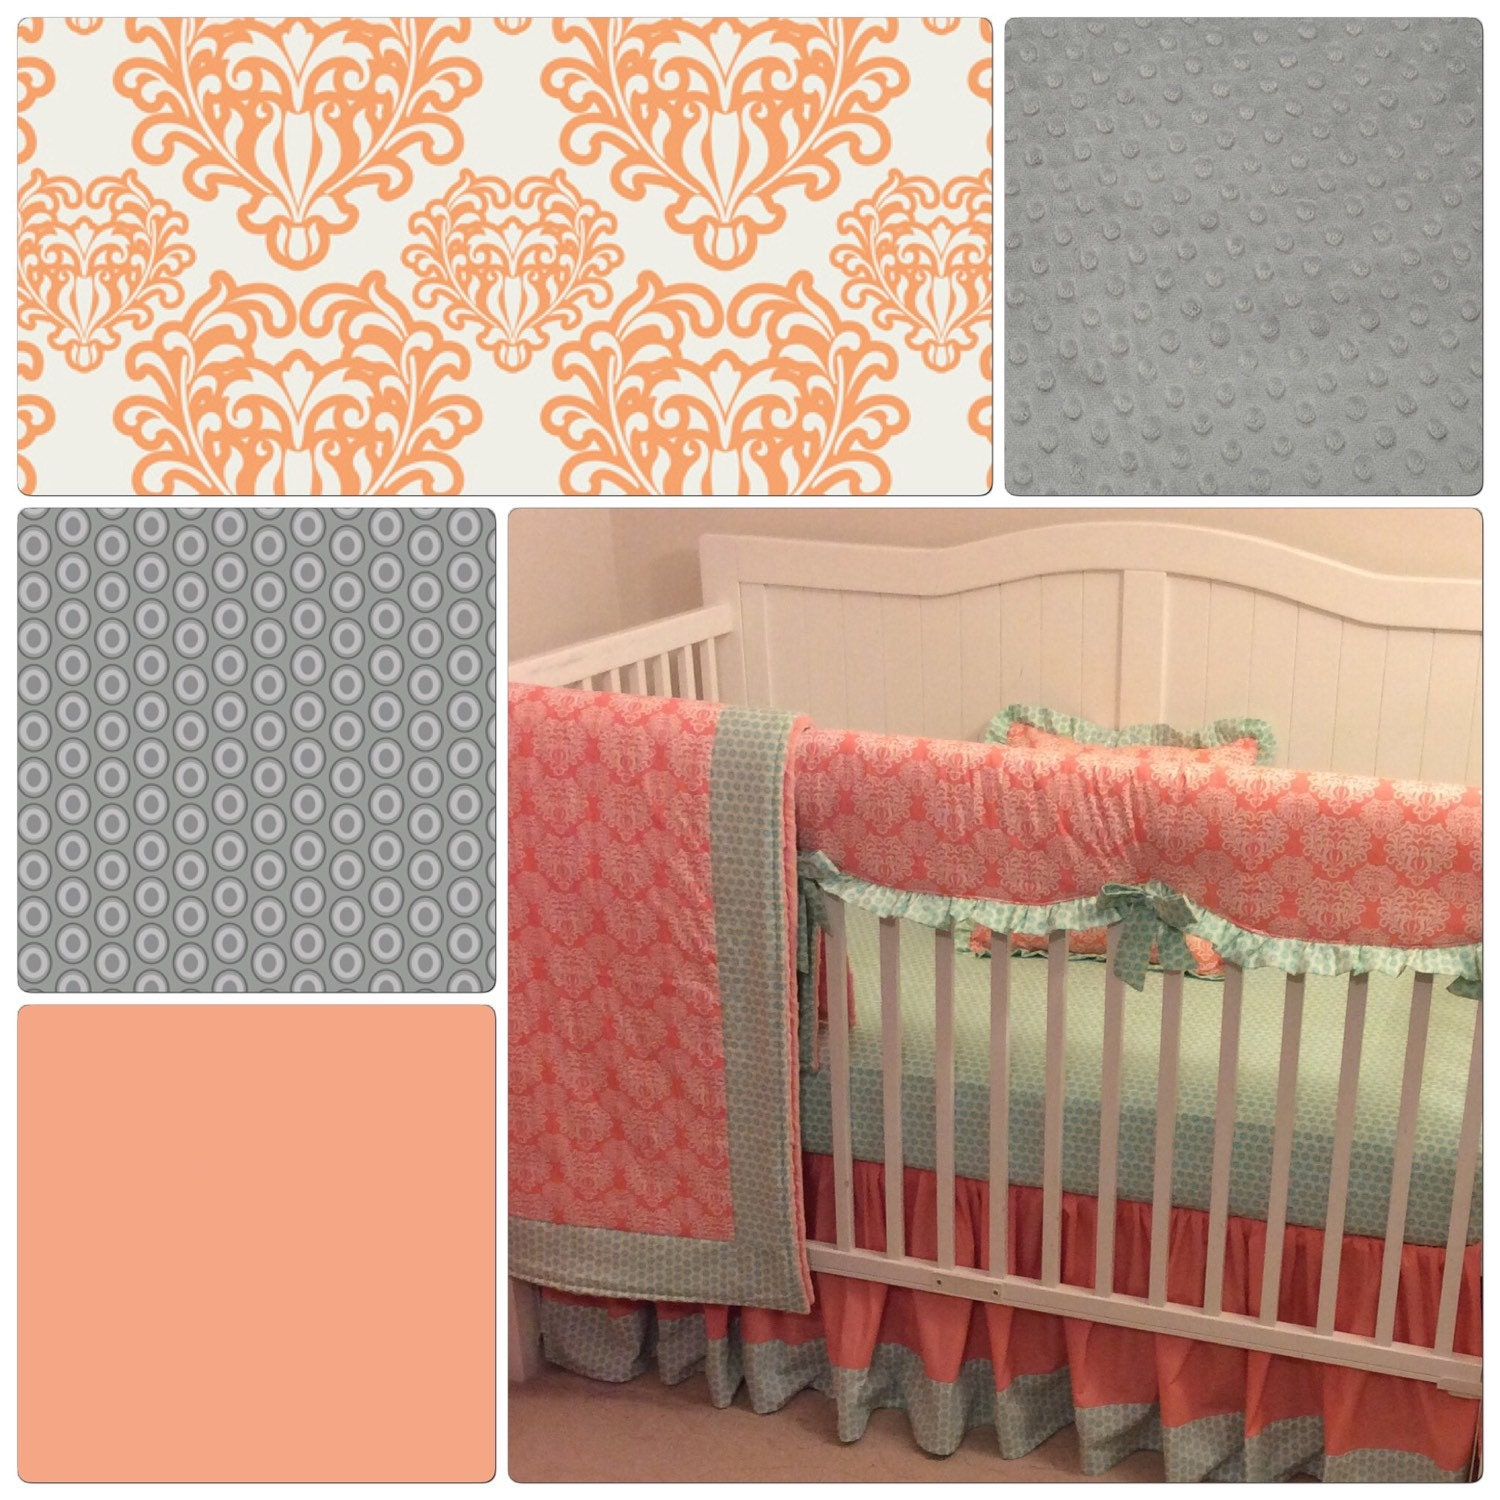 crib bedding set peach gray ruffled by butterbeansboutique on etsy. Black Bedroom Furniture Sets. Home Design Ideas